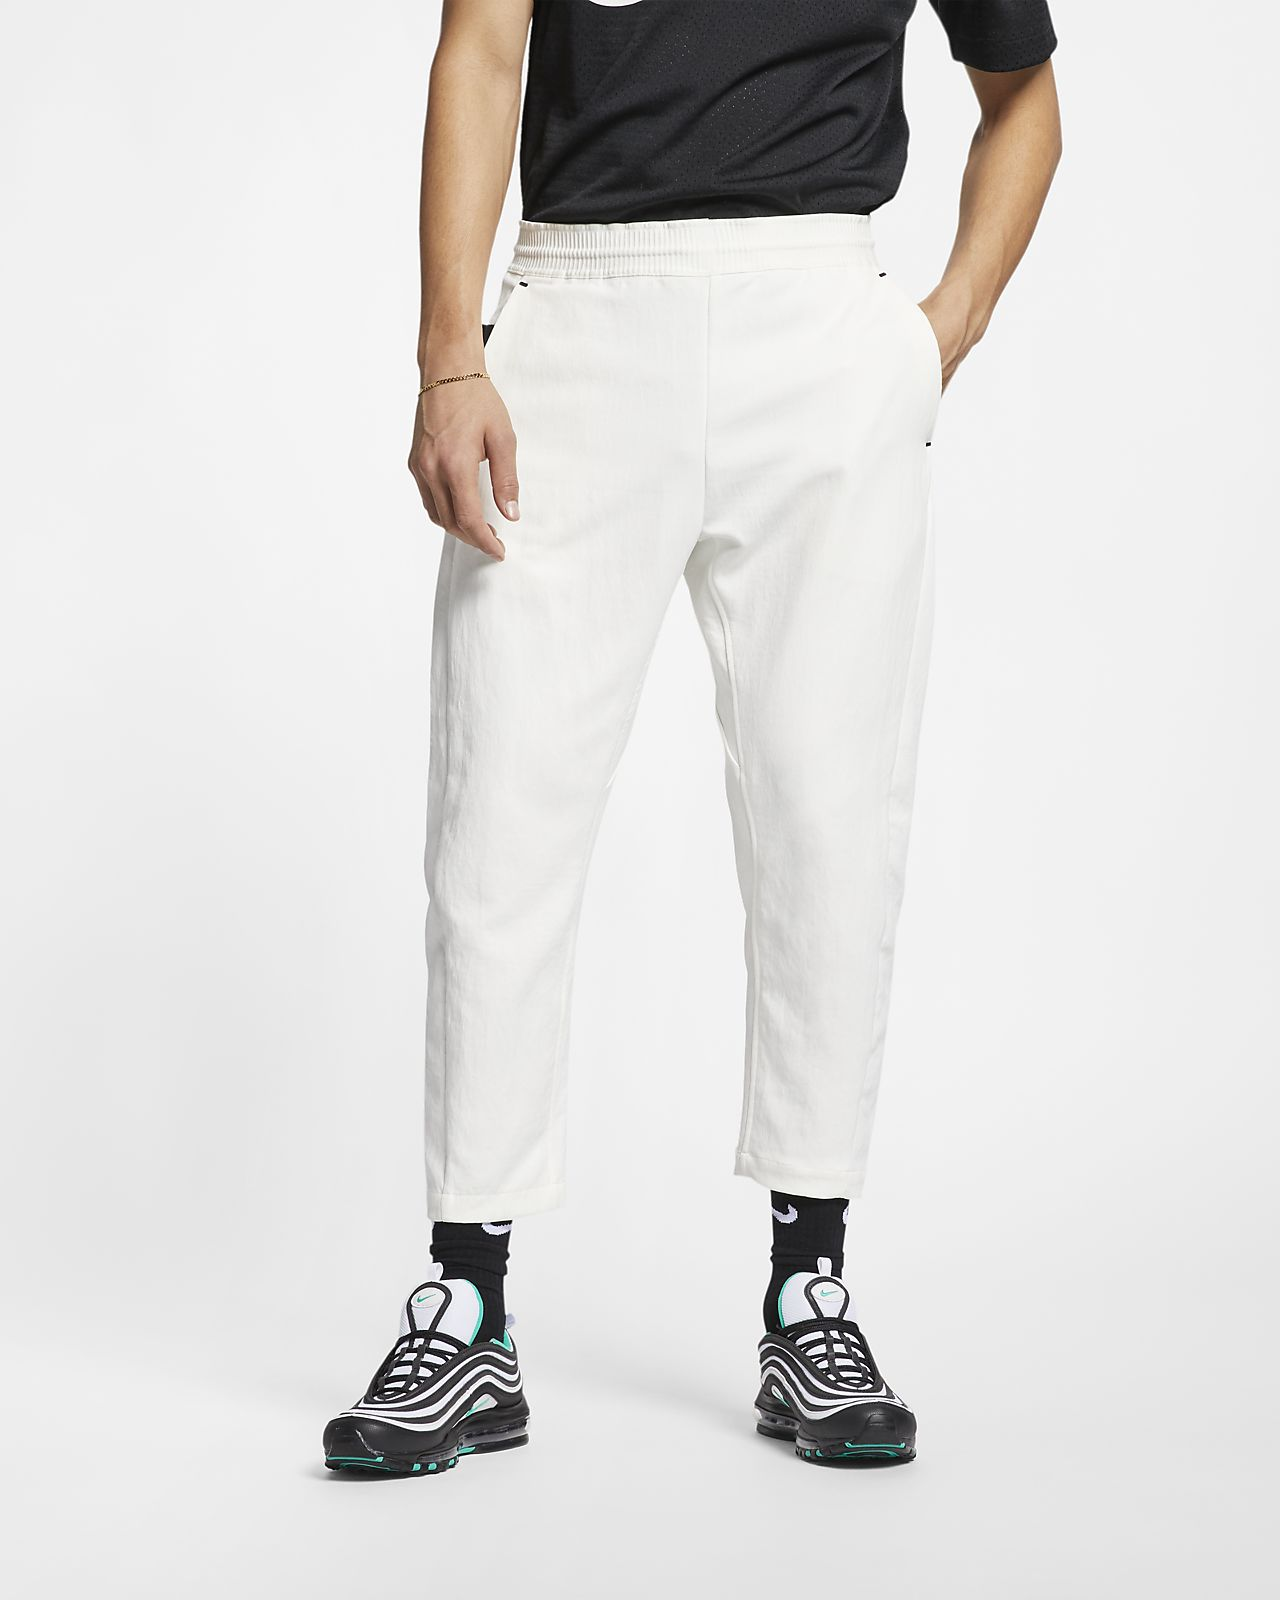 save off a1185 c75a1 Cropped Woven Pants. Nike Sportswear Tech Pack